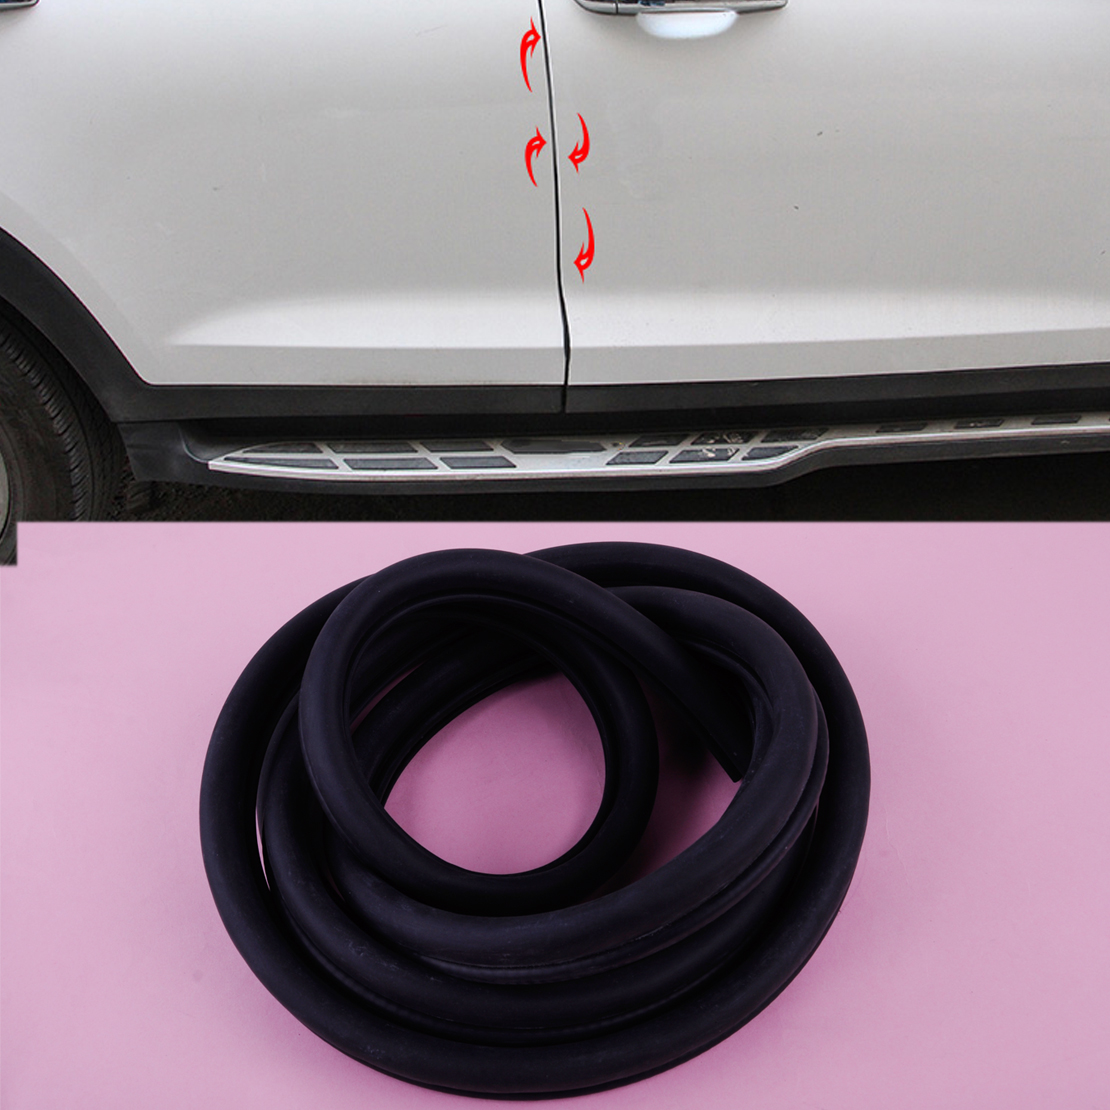 New Black Epdm Lock Rubber Seal Car Door Edge Protector Strip Bulb Rv Boat Camper Fit For Vw Toyota Bmw Audi Nissan Sale Overall Discount 50-70%